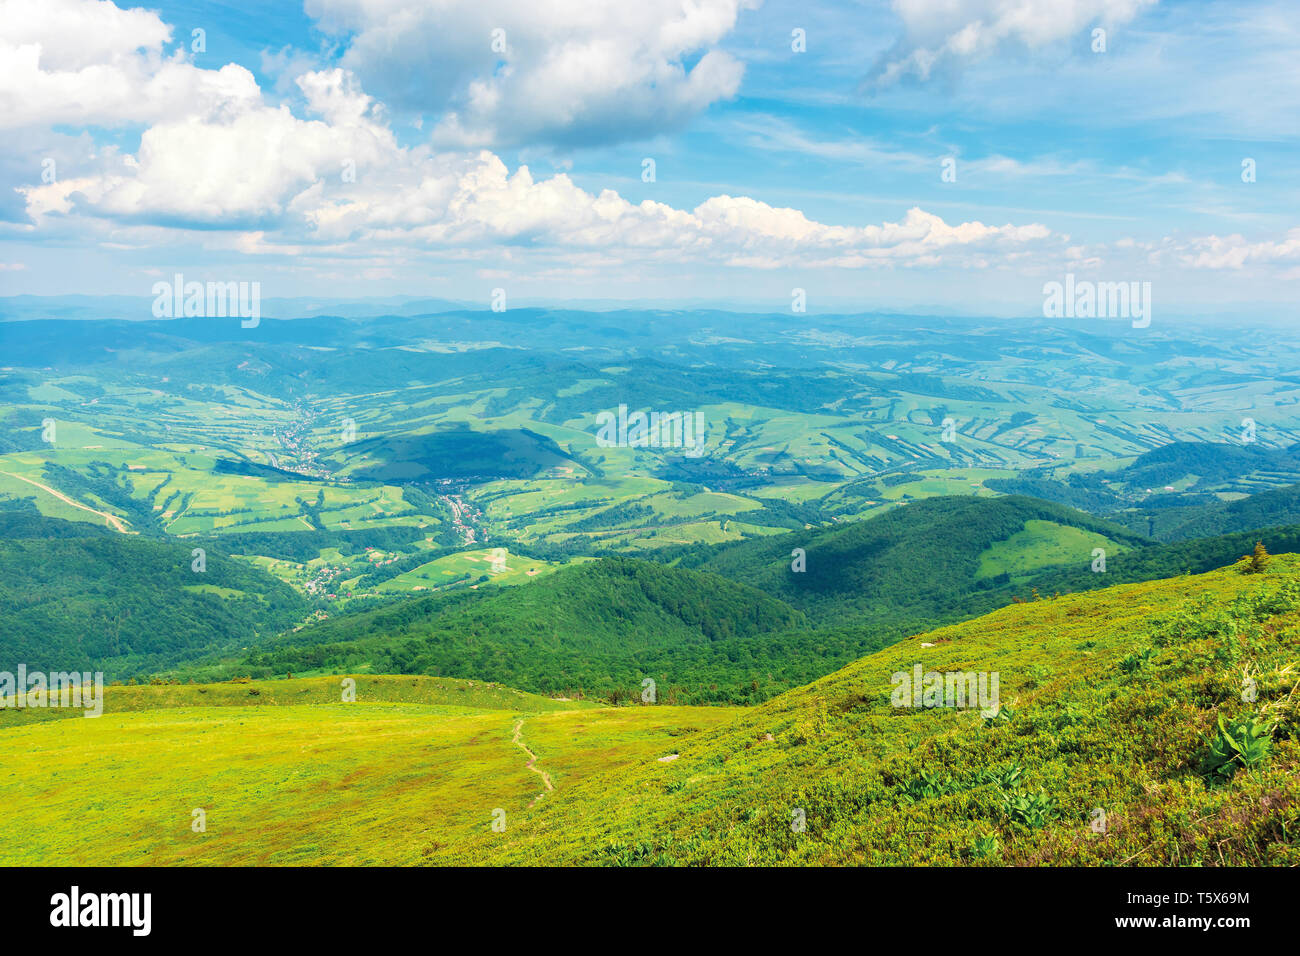 wonderful mountain landscape in summer.  green grassy hills and slopes. path downhill through the meadow. settlement and rural area in the distant val - Stock Image